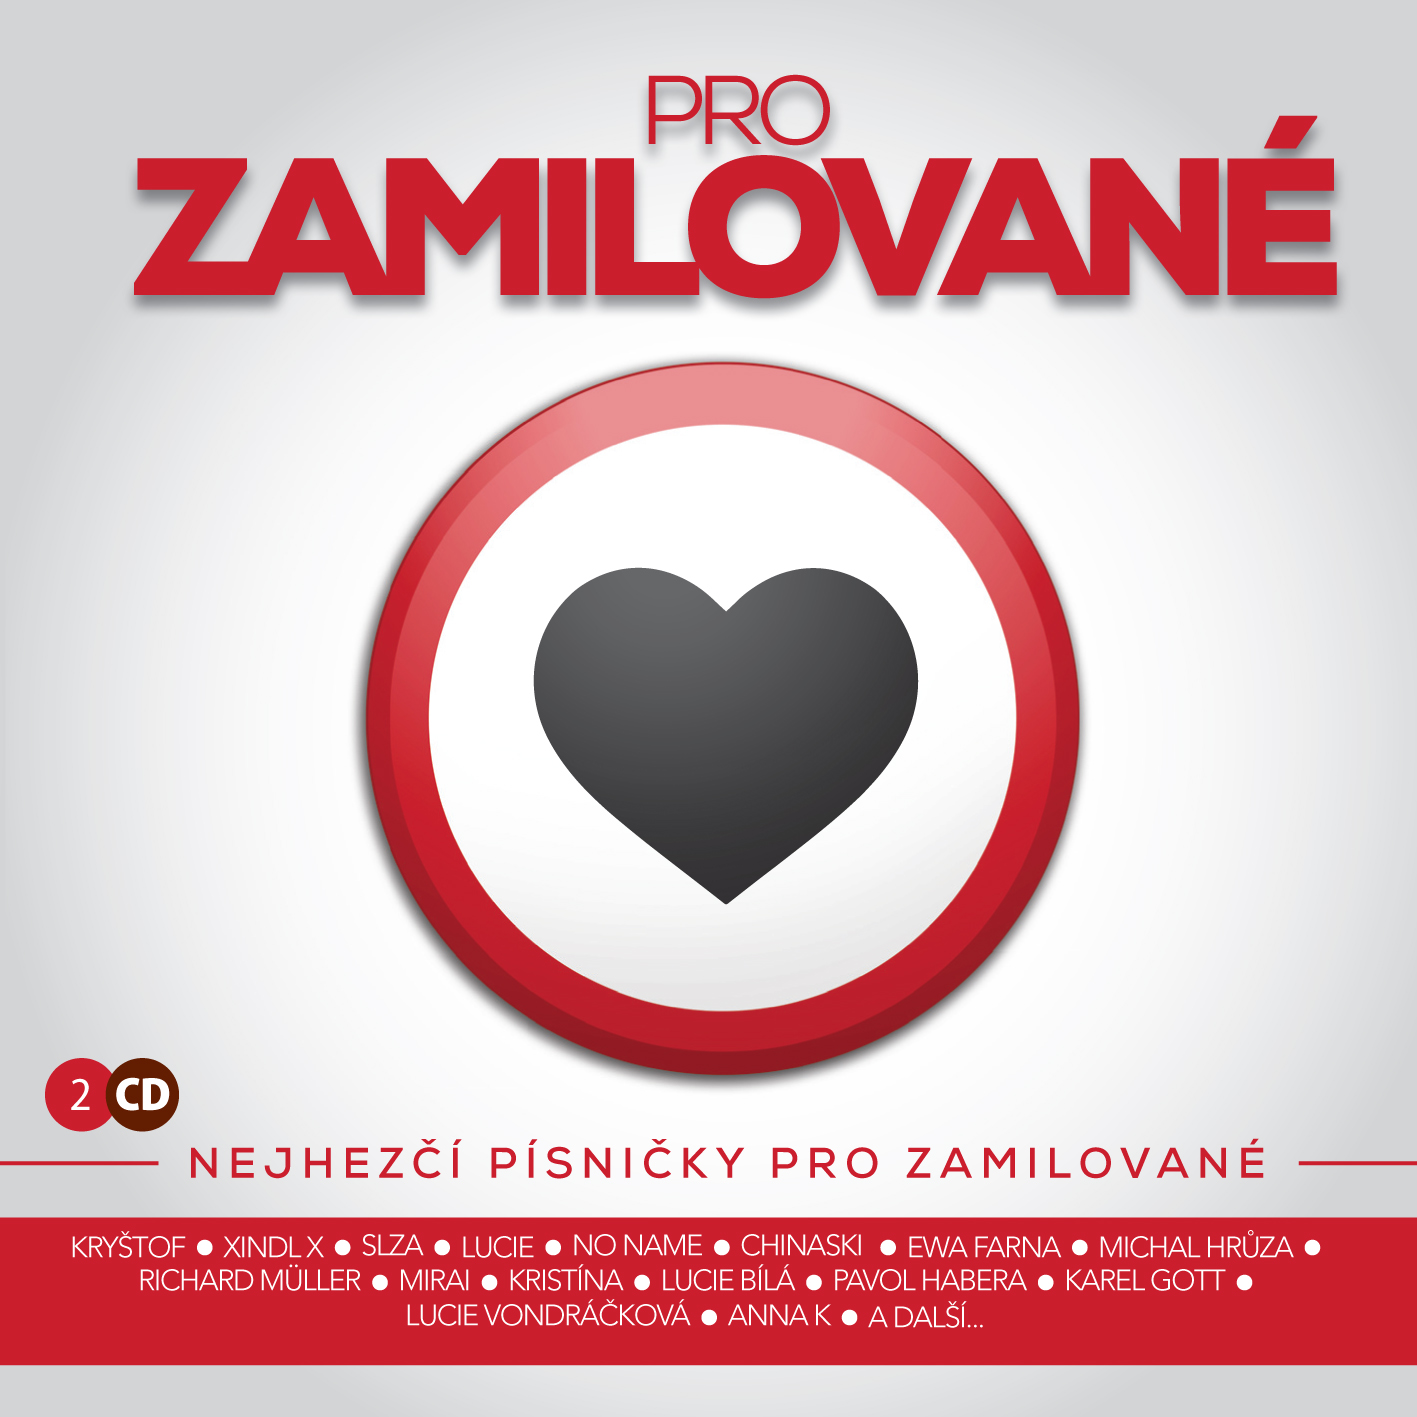 CD Shop - RUZNI/POP NATIONAL PRO ZAMILOVANE